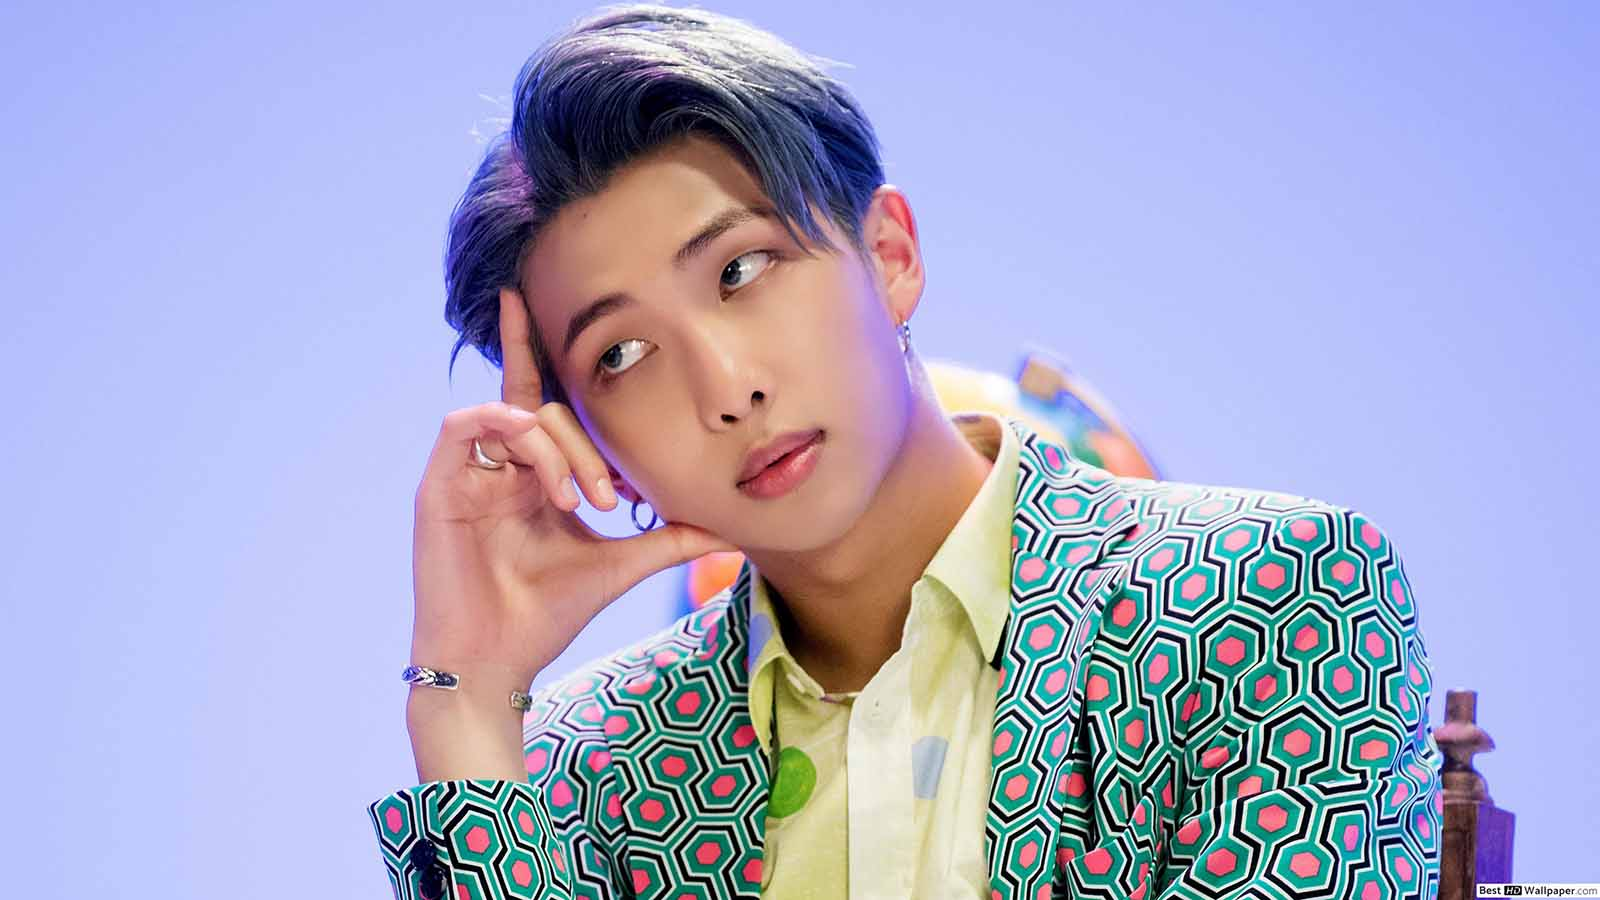 RM got honest during a BTS interview in April 2020 about an ex-girlfriend who broke his heart. Learn how he overcame his heartbreak.